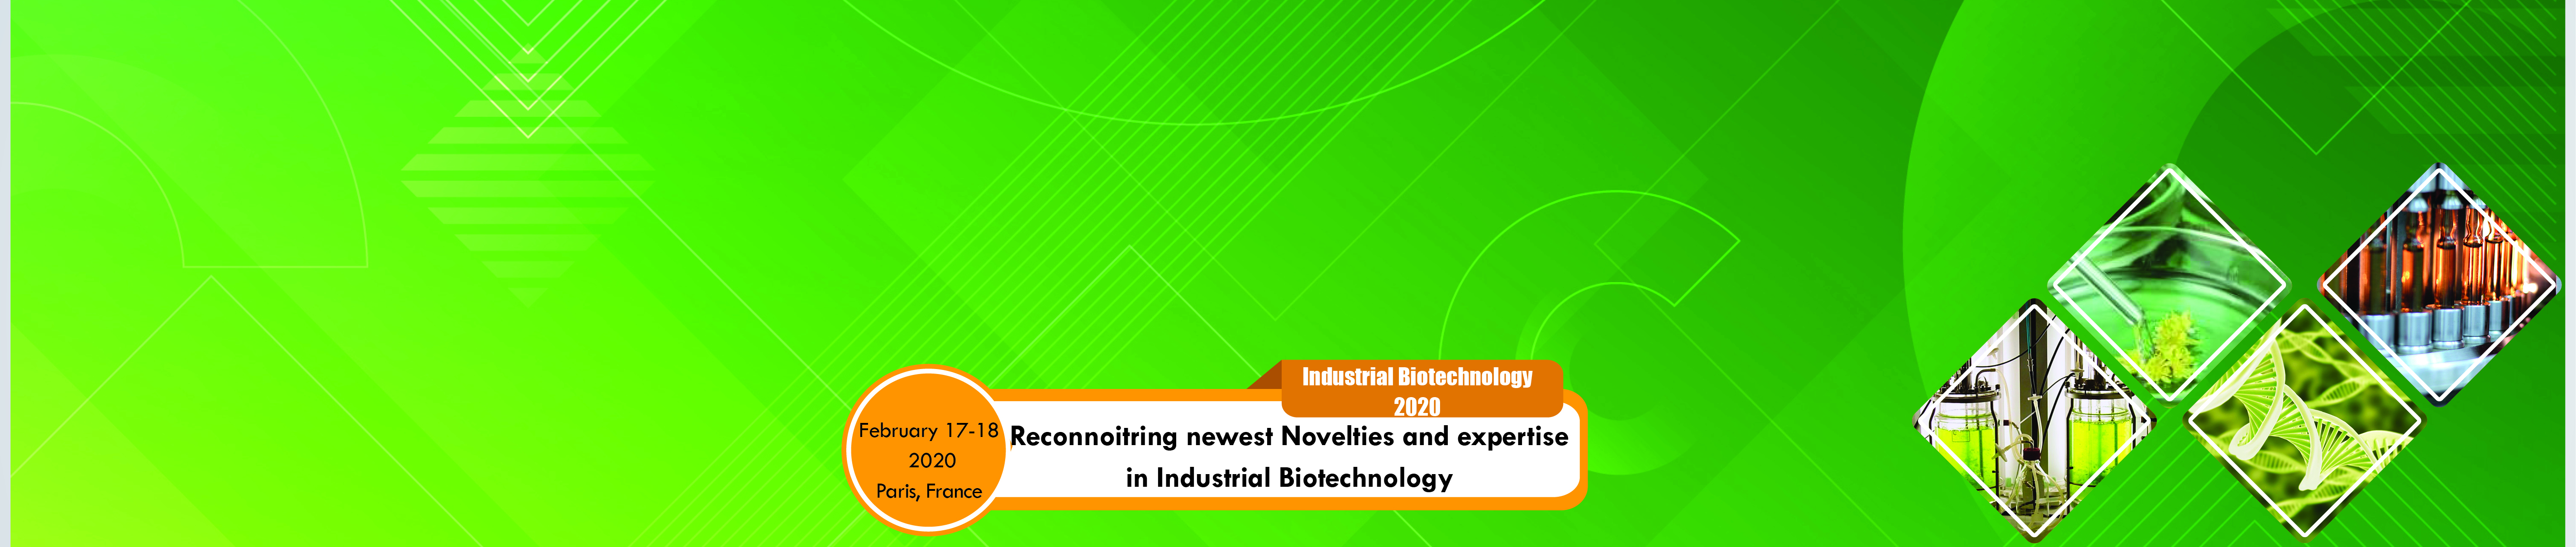 Industrial Biotechnology 2020 Banner